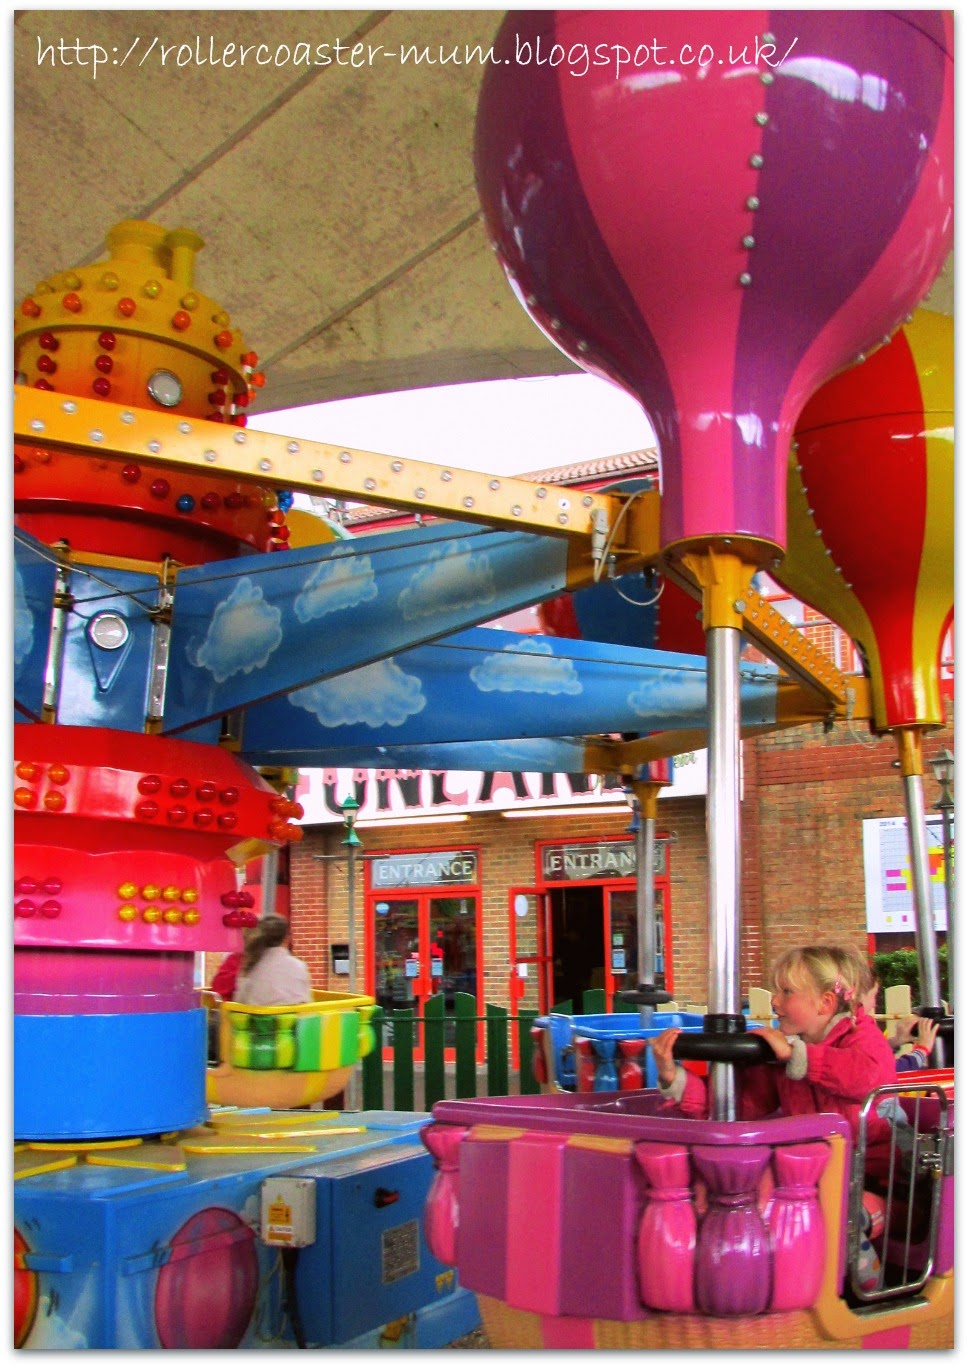 Balloon ride, Funland, Hayling Island